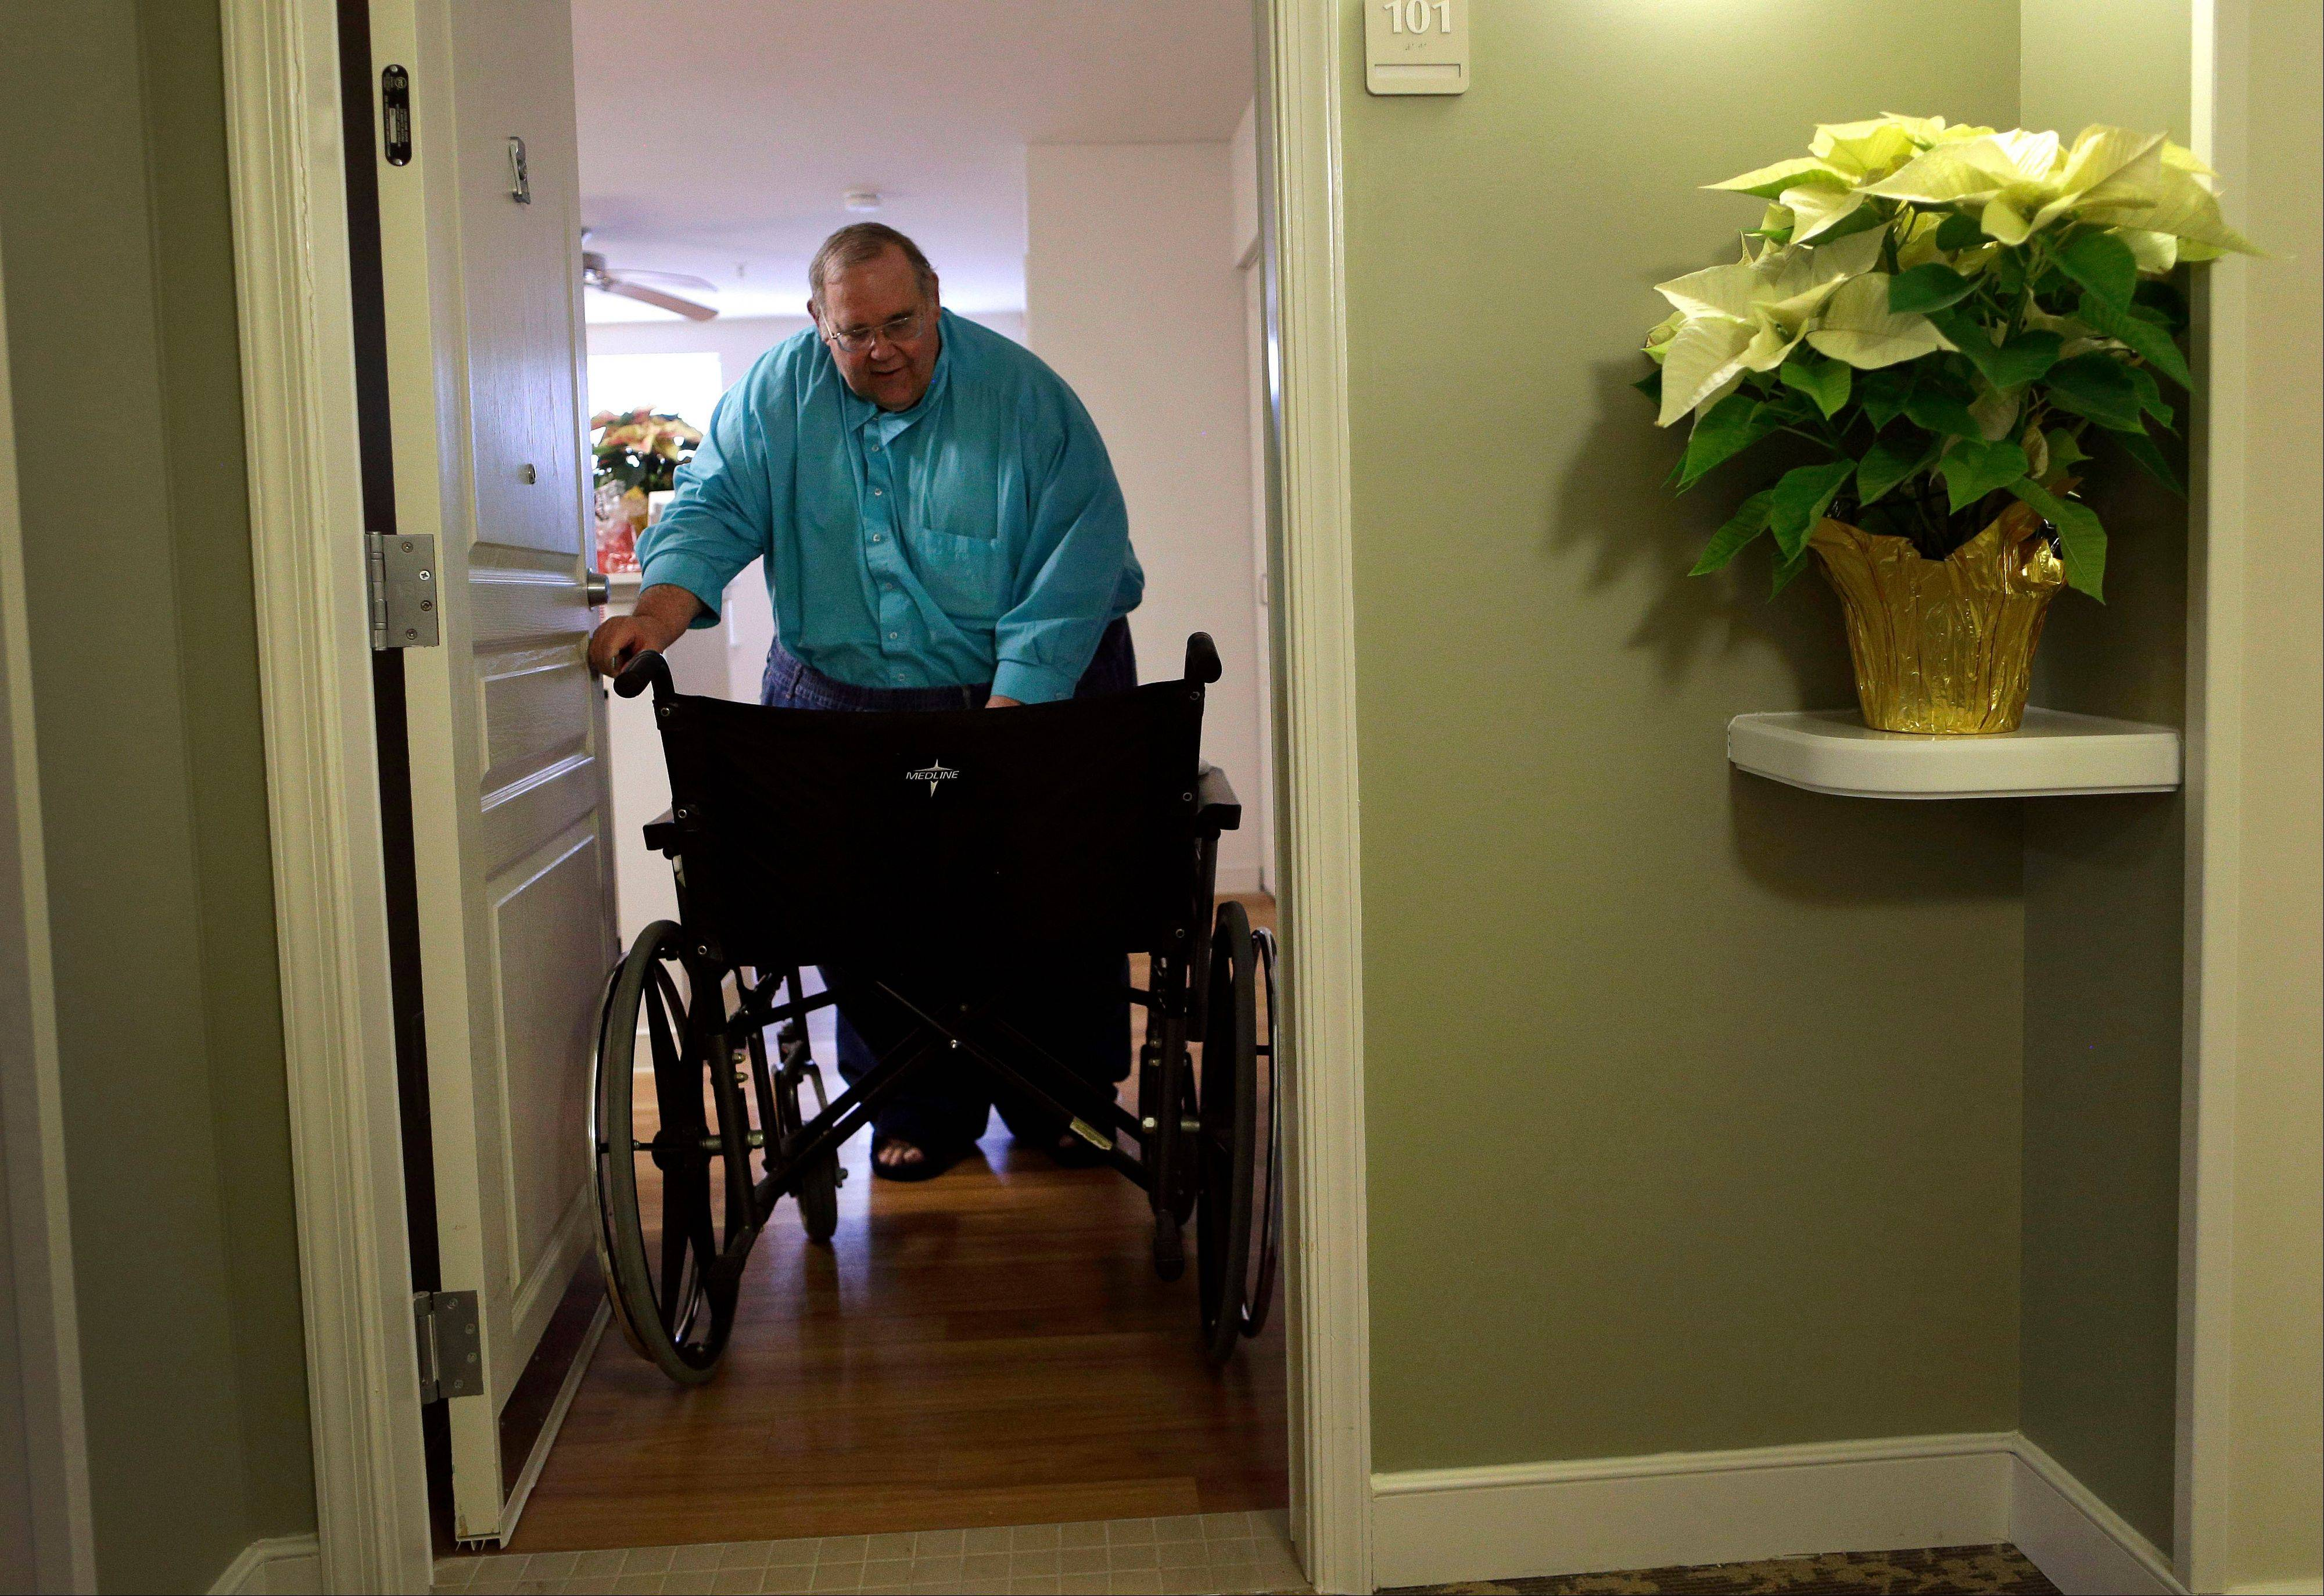 George Warren pulls his wheelchair through his apartment's front door at Village Crossroads, an affordable senior community in Nottingham, Md. Warren's wheelchair is too wide for the doorway and he can't afford a narrower model, so he folds it before carefully pulling it through.